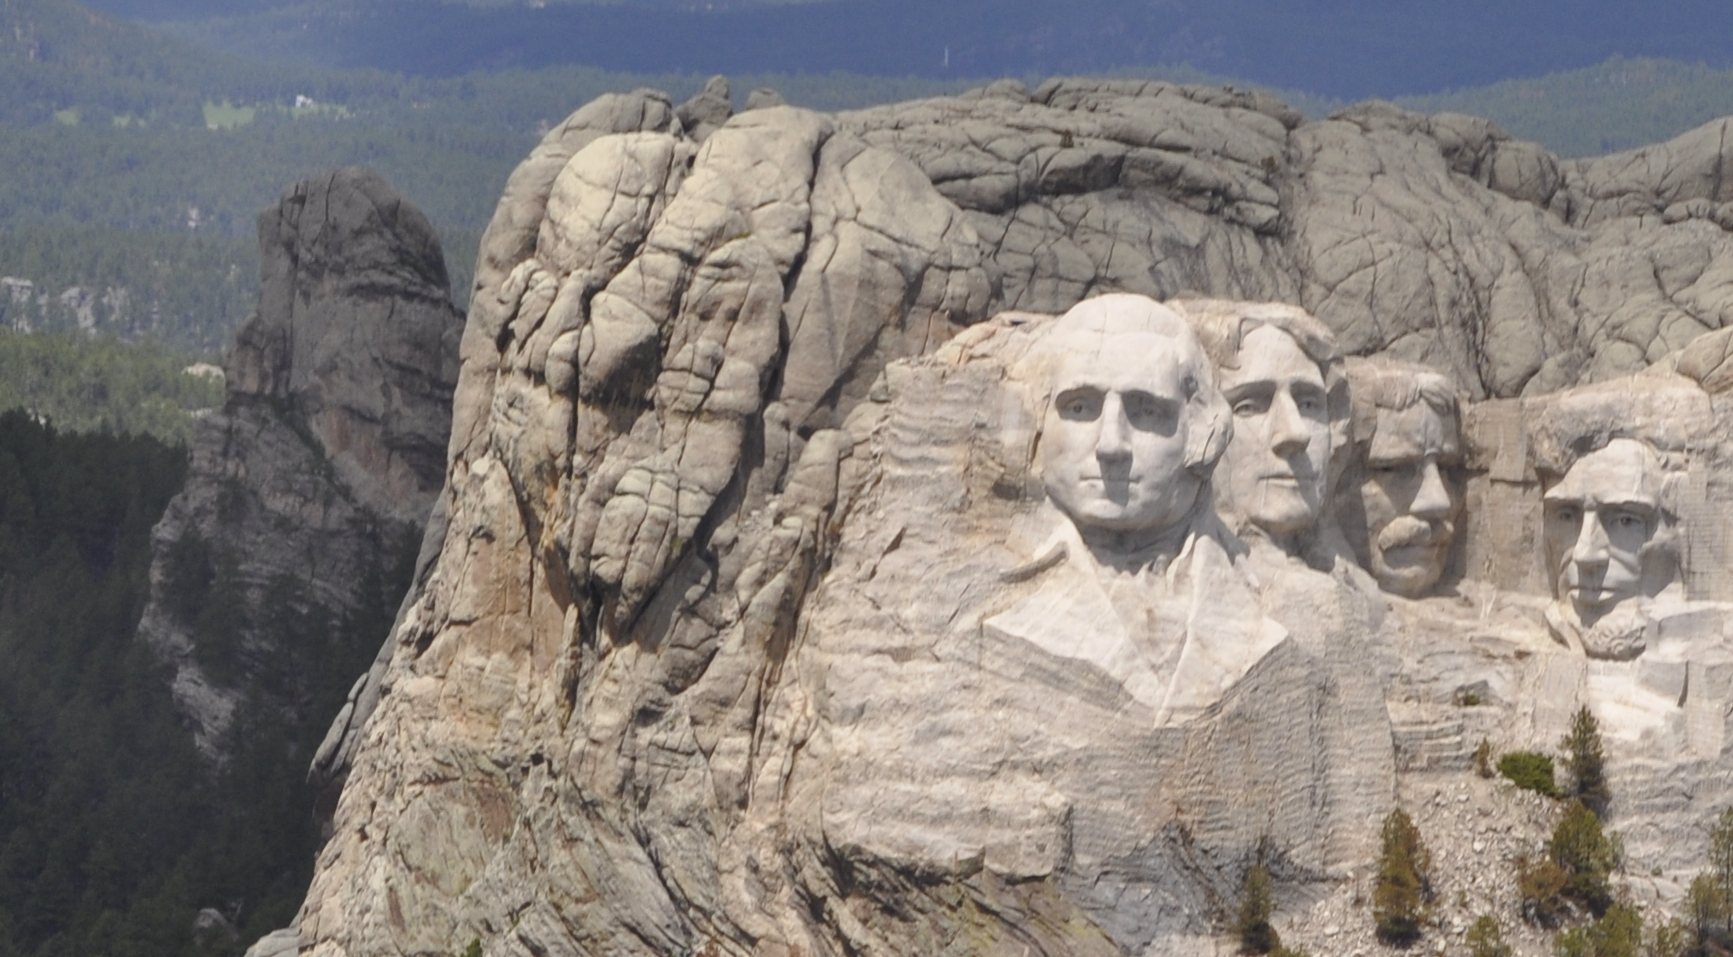 Worksheet Building Mount Rushmore mount rushmore abagond rushmore